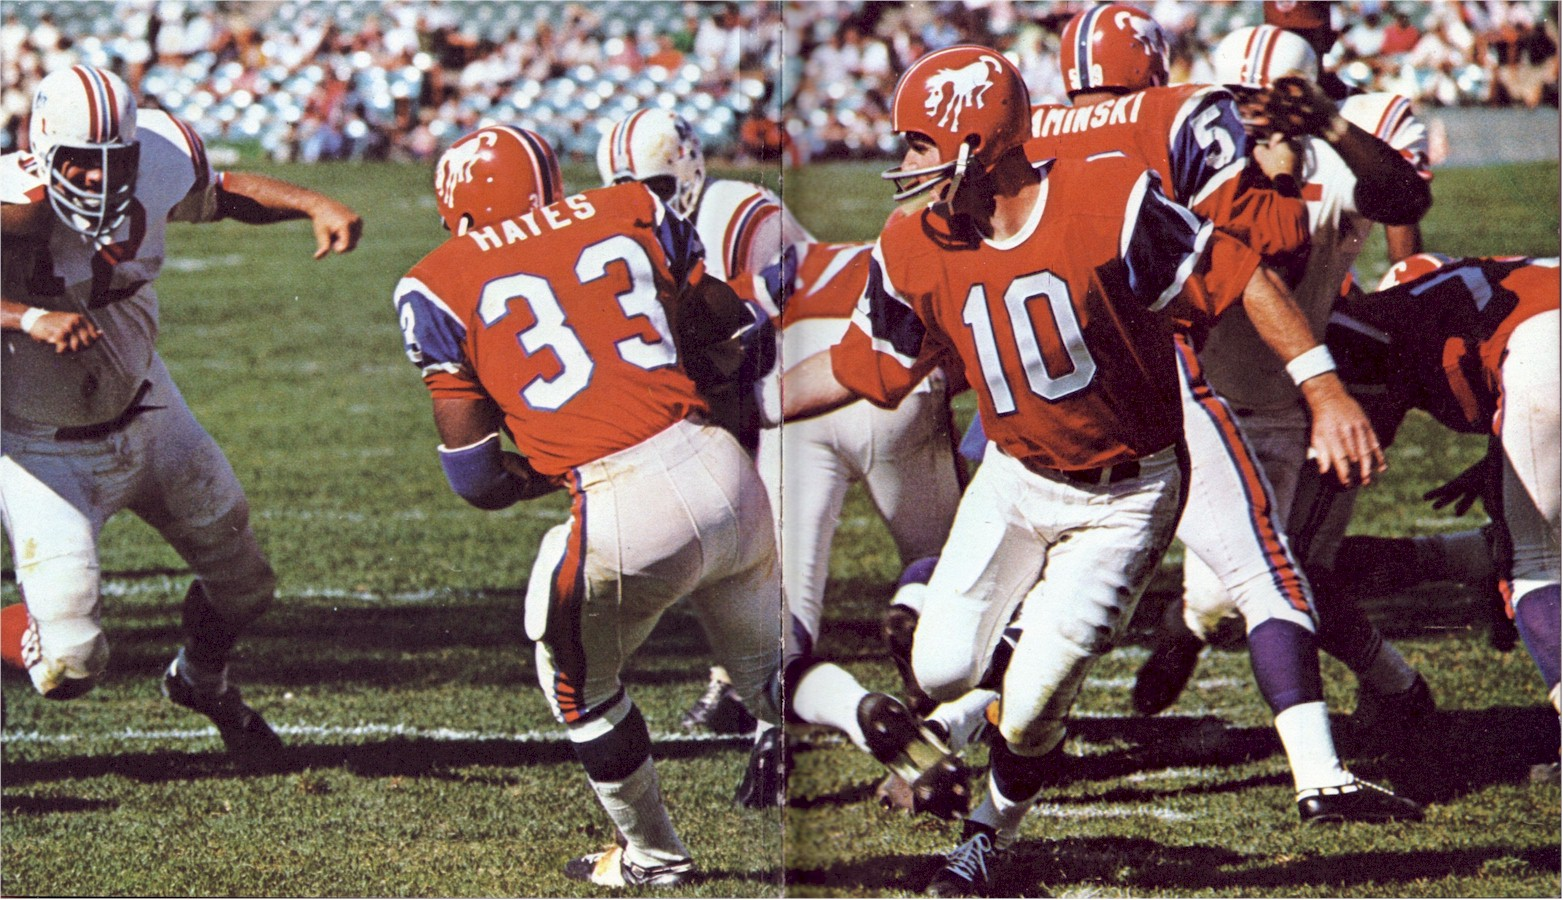 ... Larry Kaminski in 1966 Bronco uniforms, against the Boston Patriots